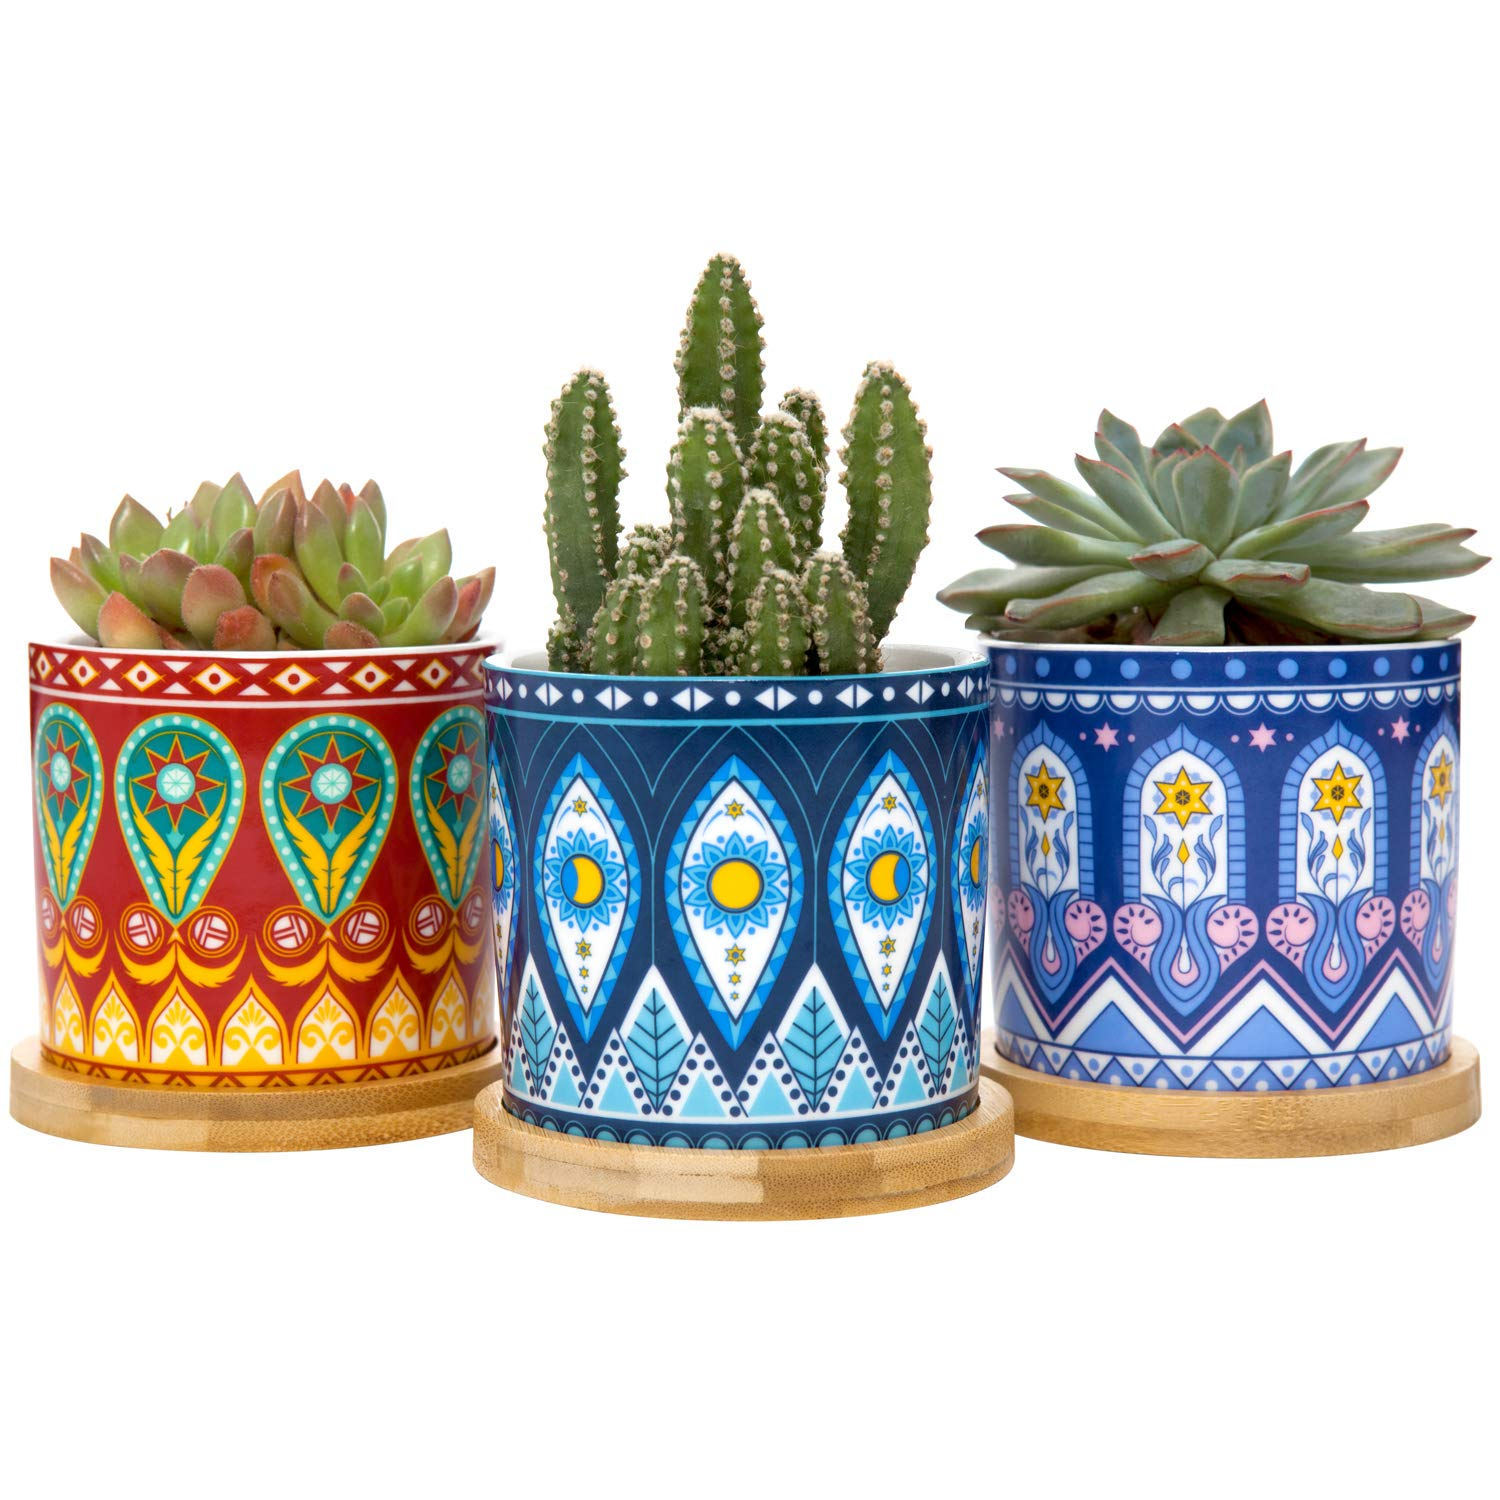 Mkono Succulent Plant Pots, 3 Inch Mandalas Ceramic Succulent Planter with Drainage Hole and Bamboo Trays for Cactus Cuttings Tiny Herb Plant Cute Gift Idea, Set of 3 Plants NOT Included